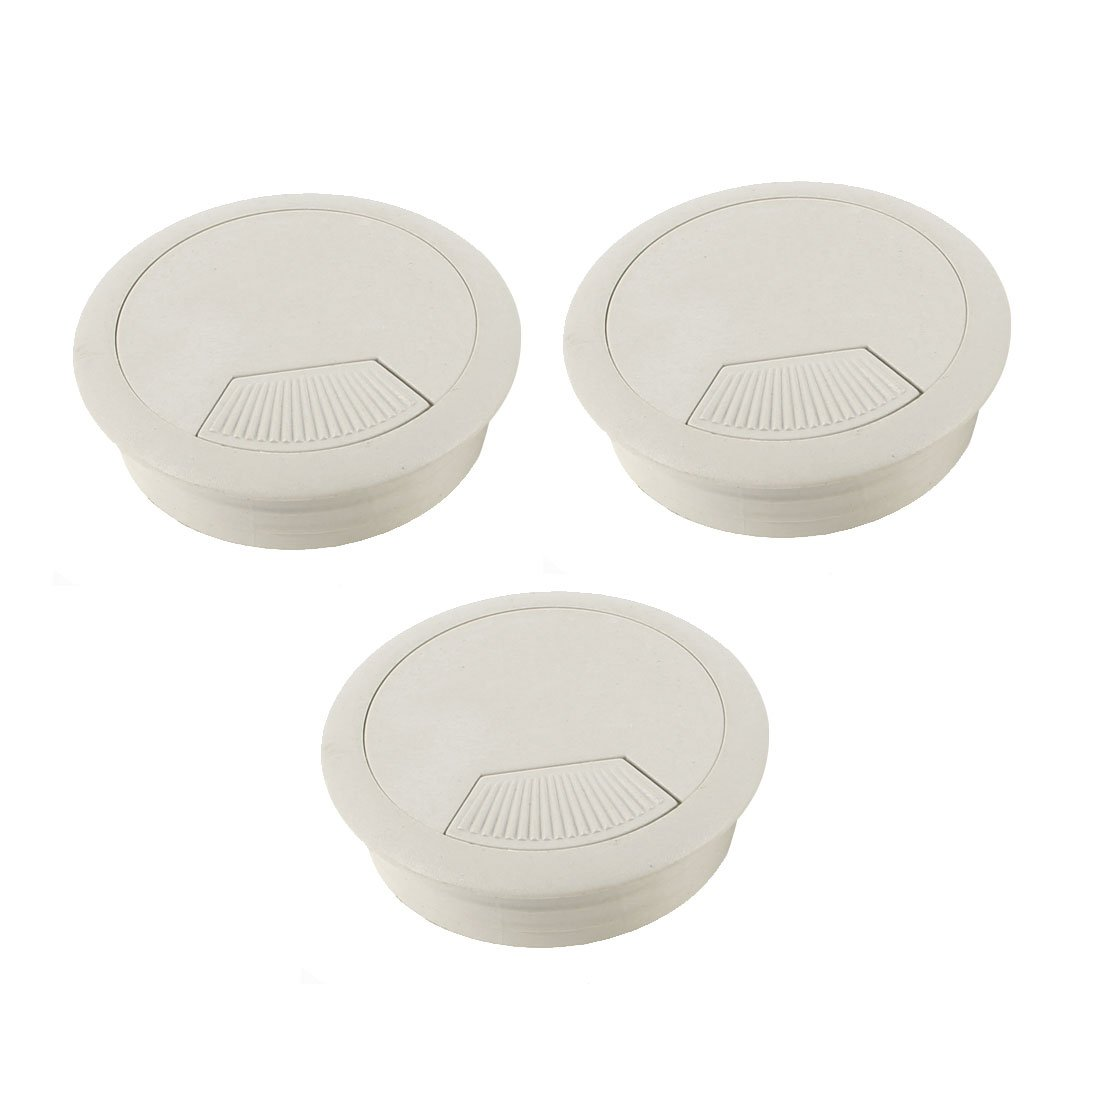 Cheap Wire Cable Covers, find Wire Cable Covers deals on line at ...